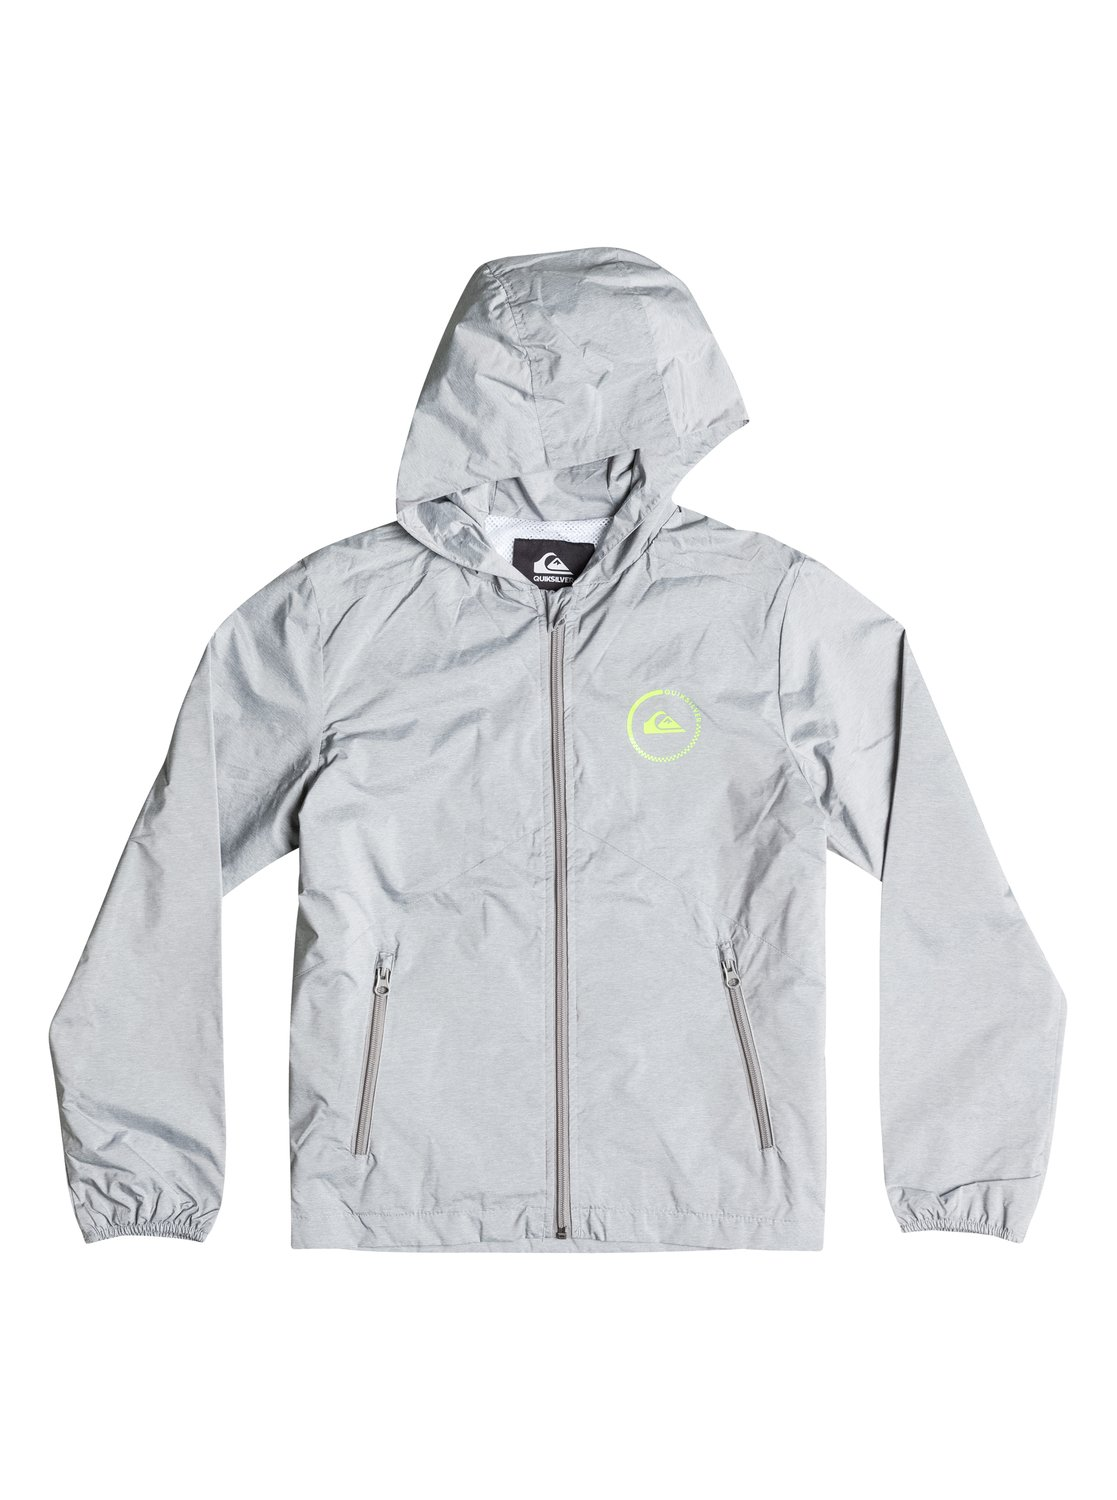 Boy's Everyday Windbreaker